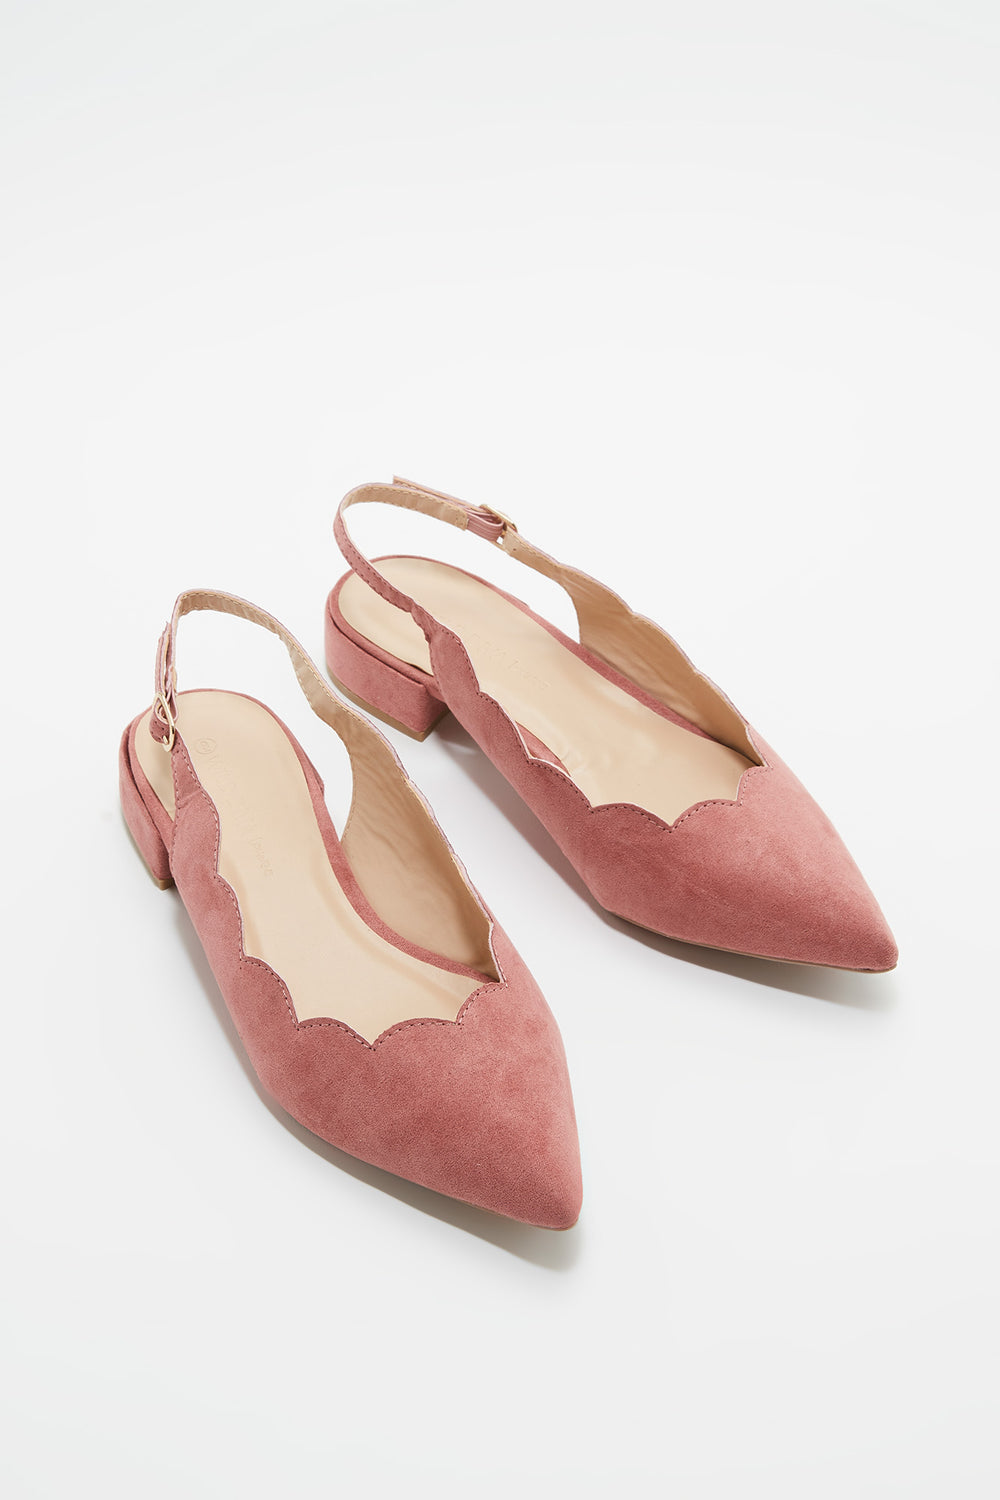 Scallop Slingback Block Kitten Heel Pump Light Pink